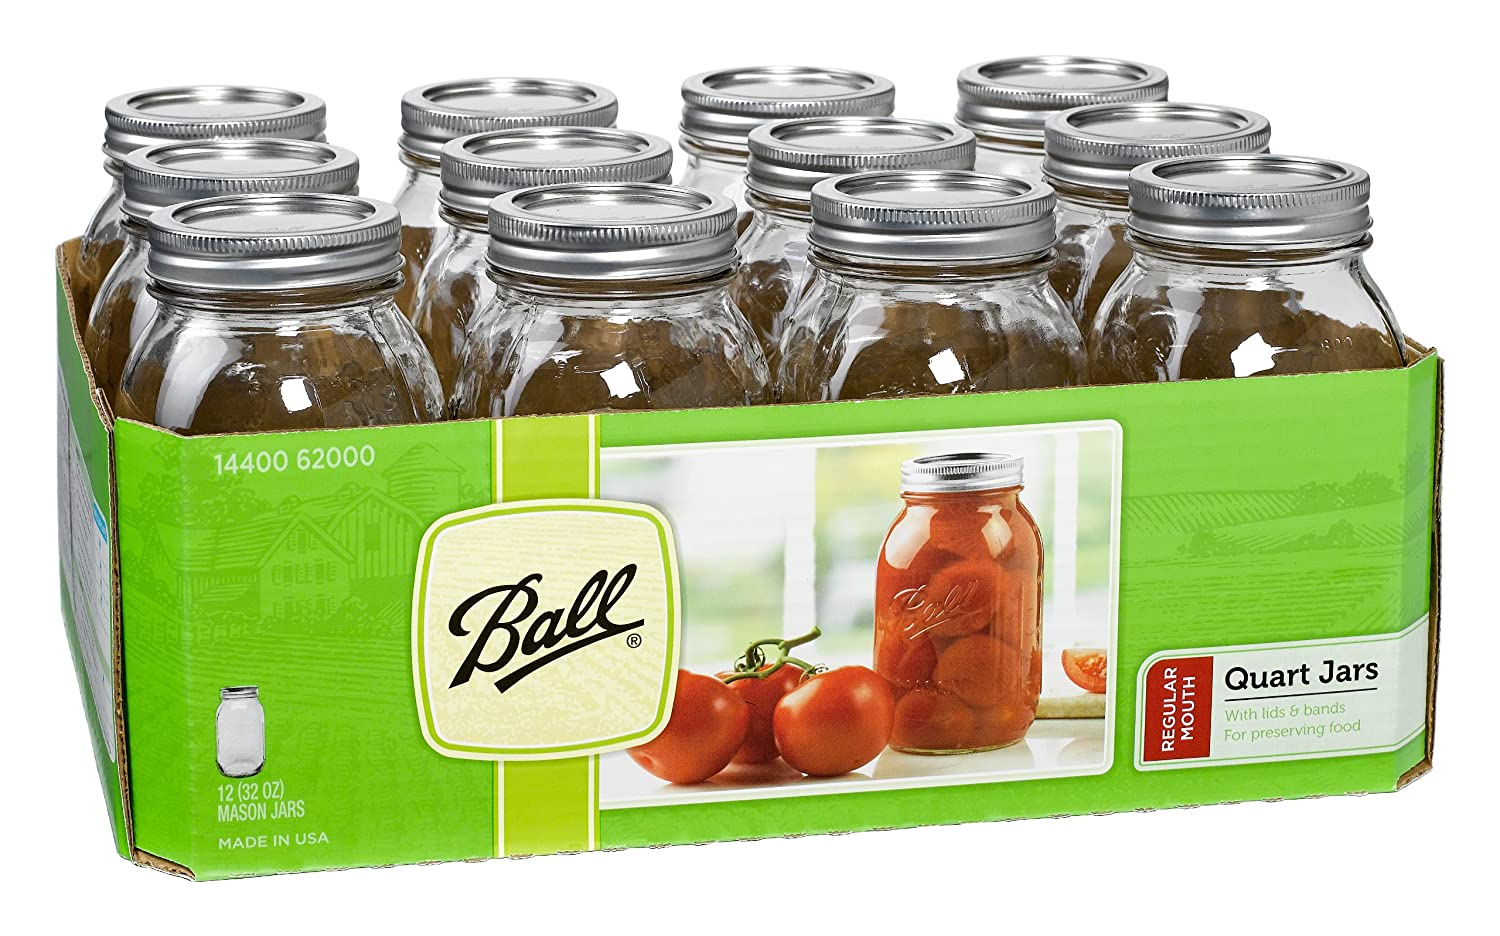 Worksheet Oz Quarts amazon com ball mason regular mouth quart jars with lids and bands set of 12 kitchen dining